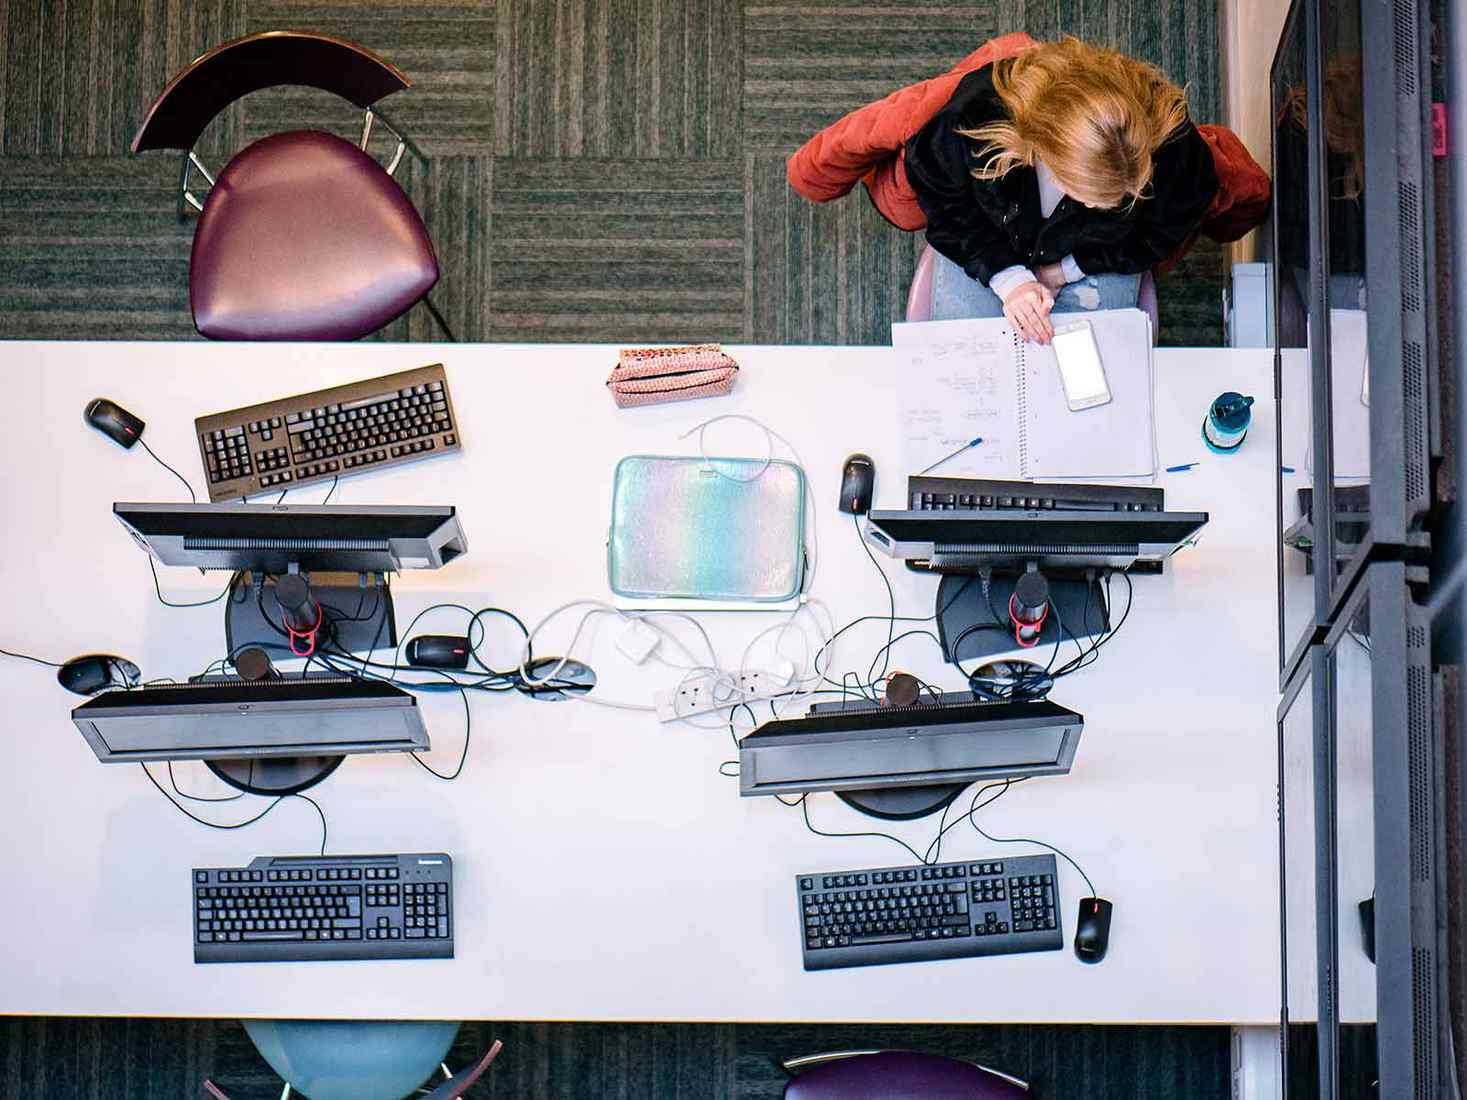 birds eye view of the computers and students heads with work